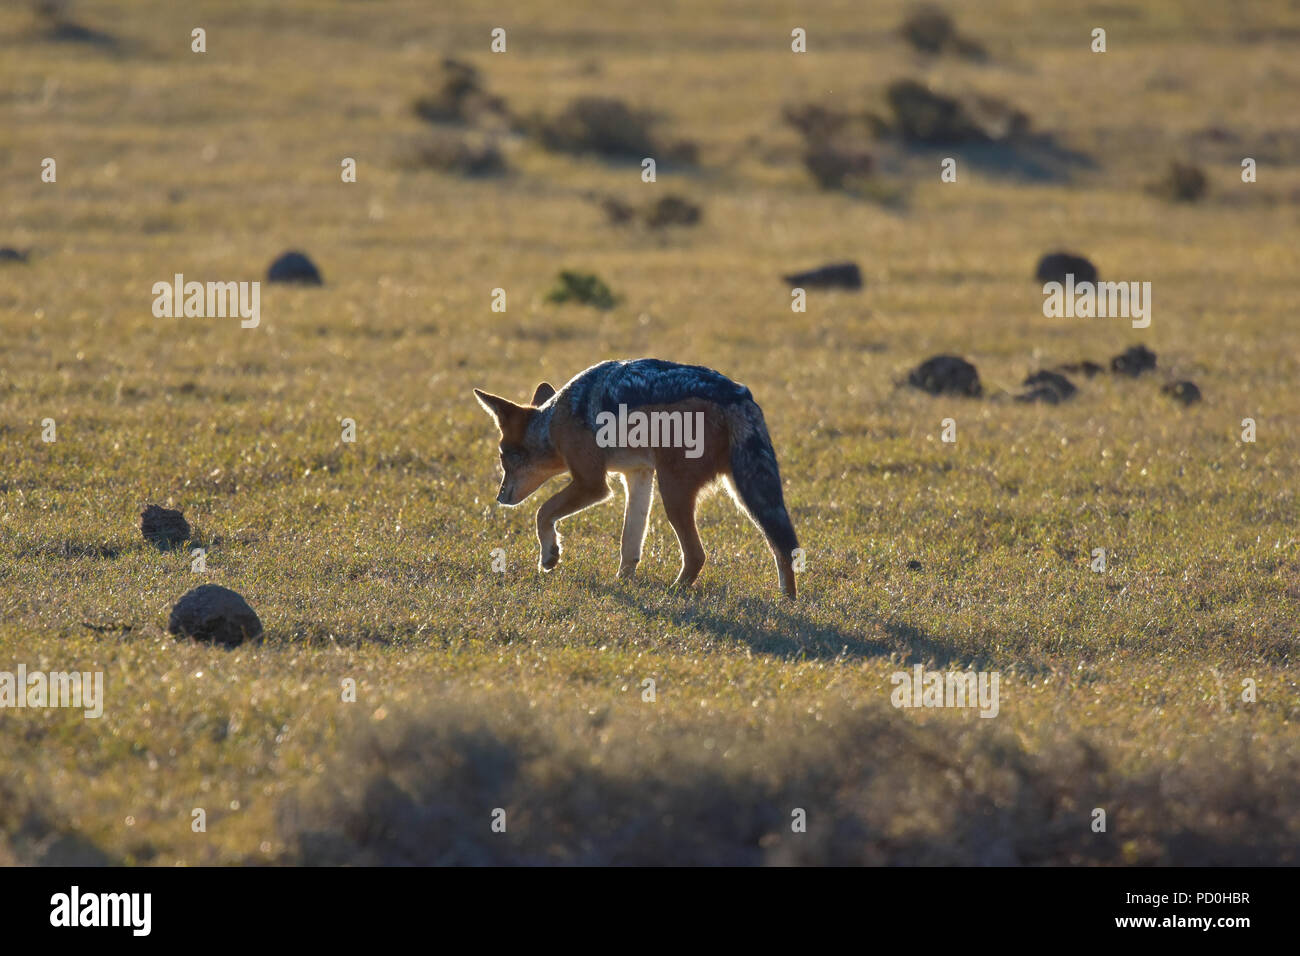 South Africa, a fantastic travel destination to experience third and first world together. Black backed jackal backlighting. Addo Elephant park. - Stock Image